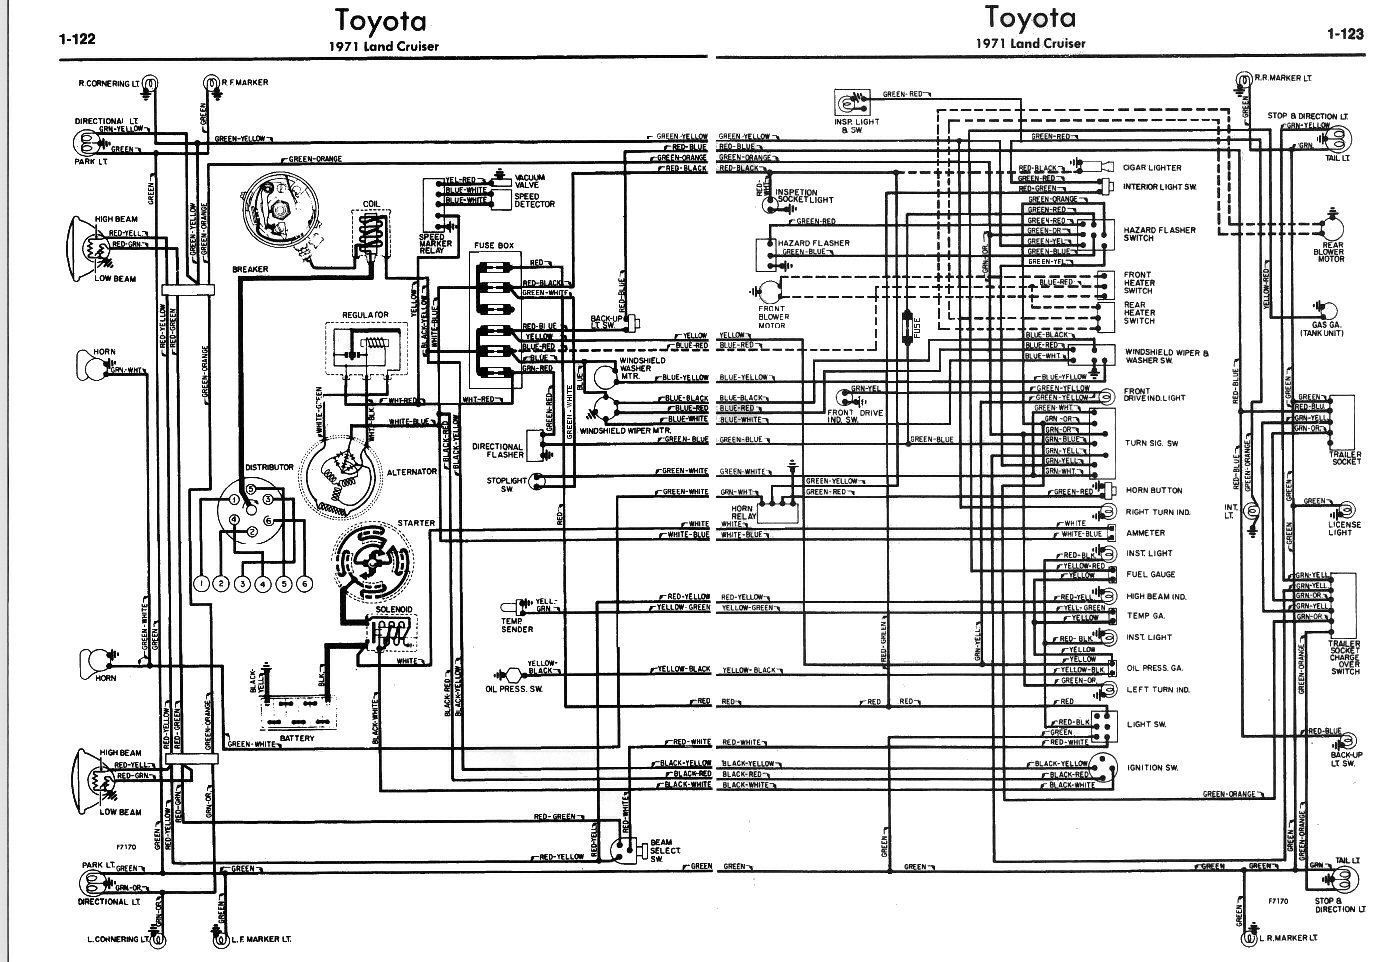 coolerman s electrical schematic and fsm file retrieval rh globalsoftware inc com toyota land cruiser wiring loom 1970 toyota fj40 wiring harness